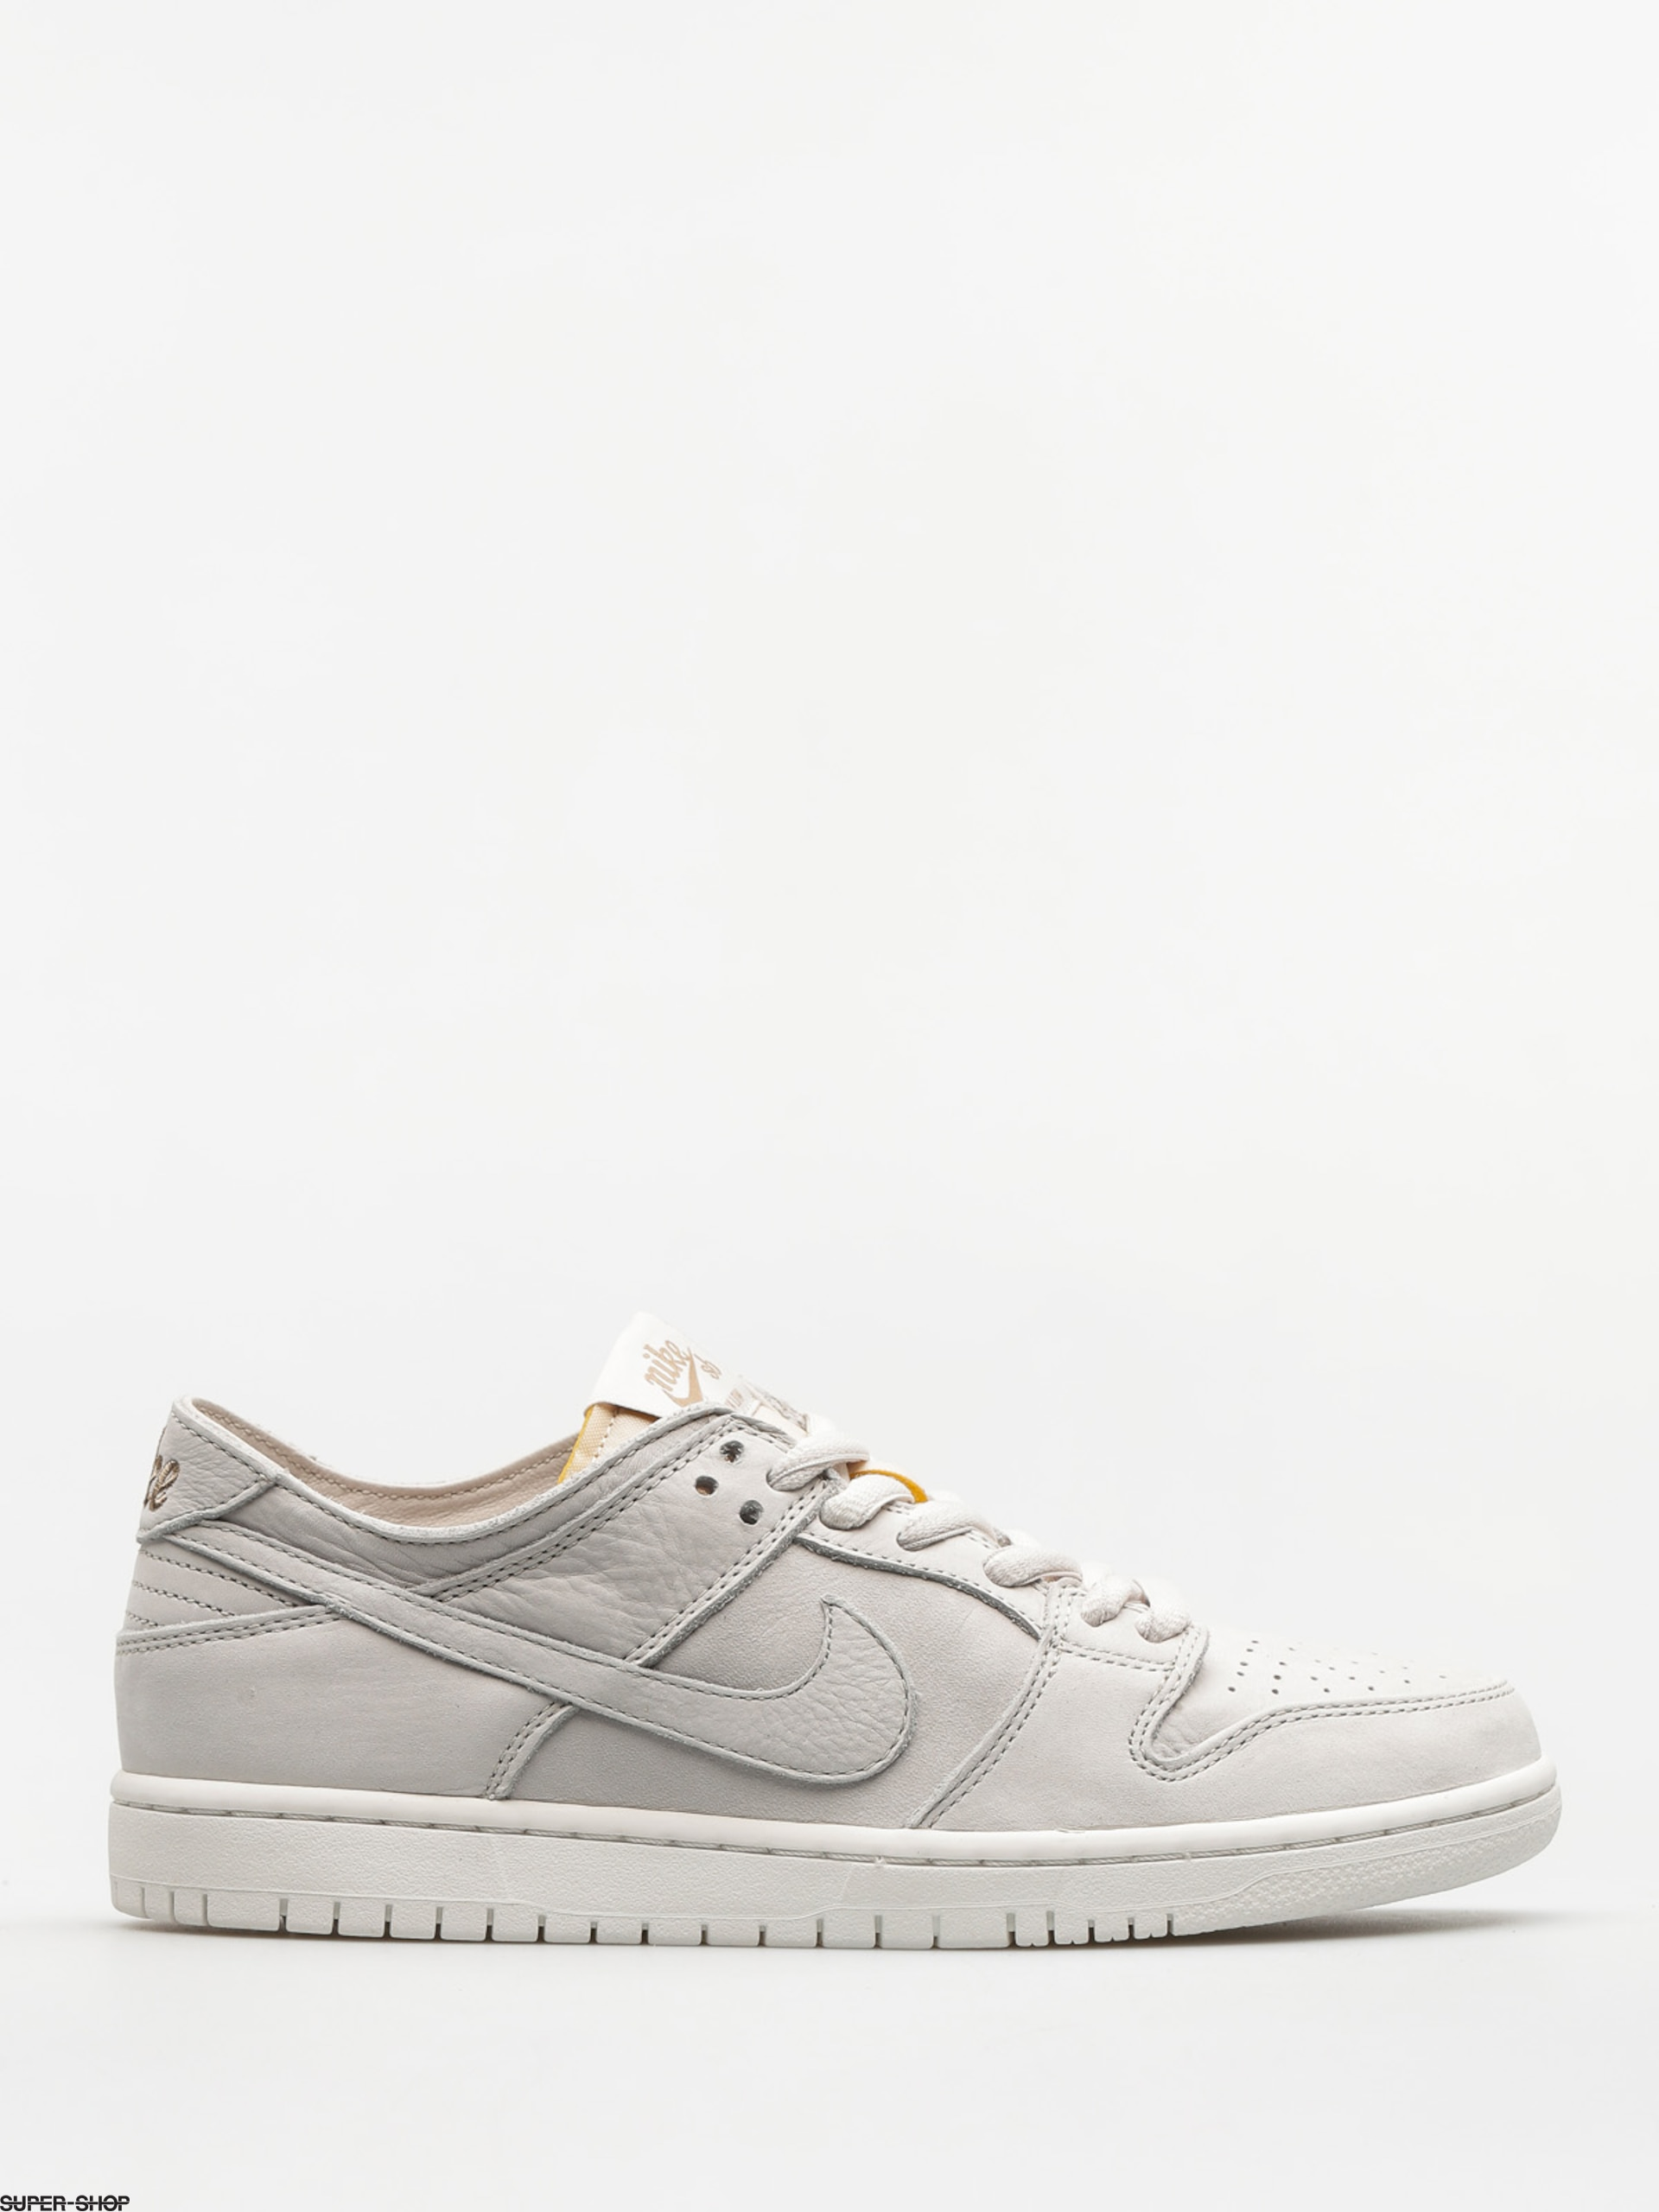 ad80765a74b0 913125-w1920-nike-sb-shoes-zoom-dunk-low-pro-deconstructed-light-bone-light- bone-summit-white-khaki.jpg